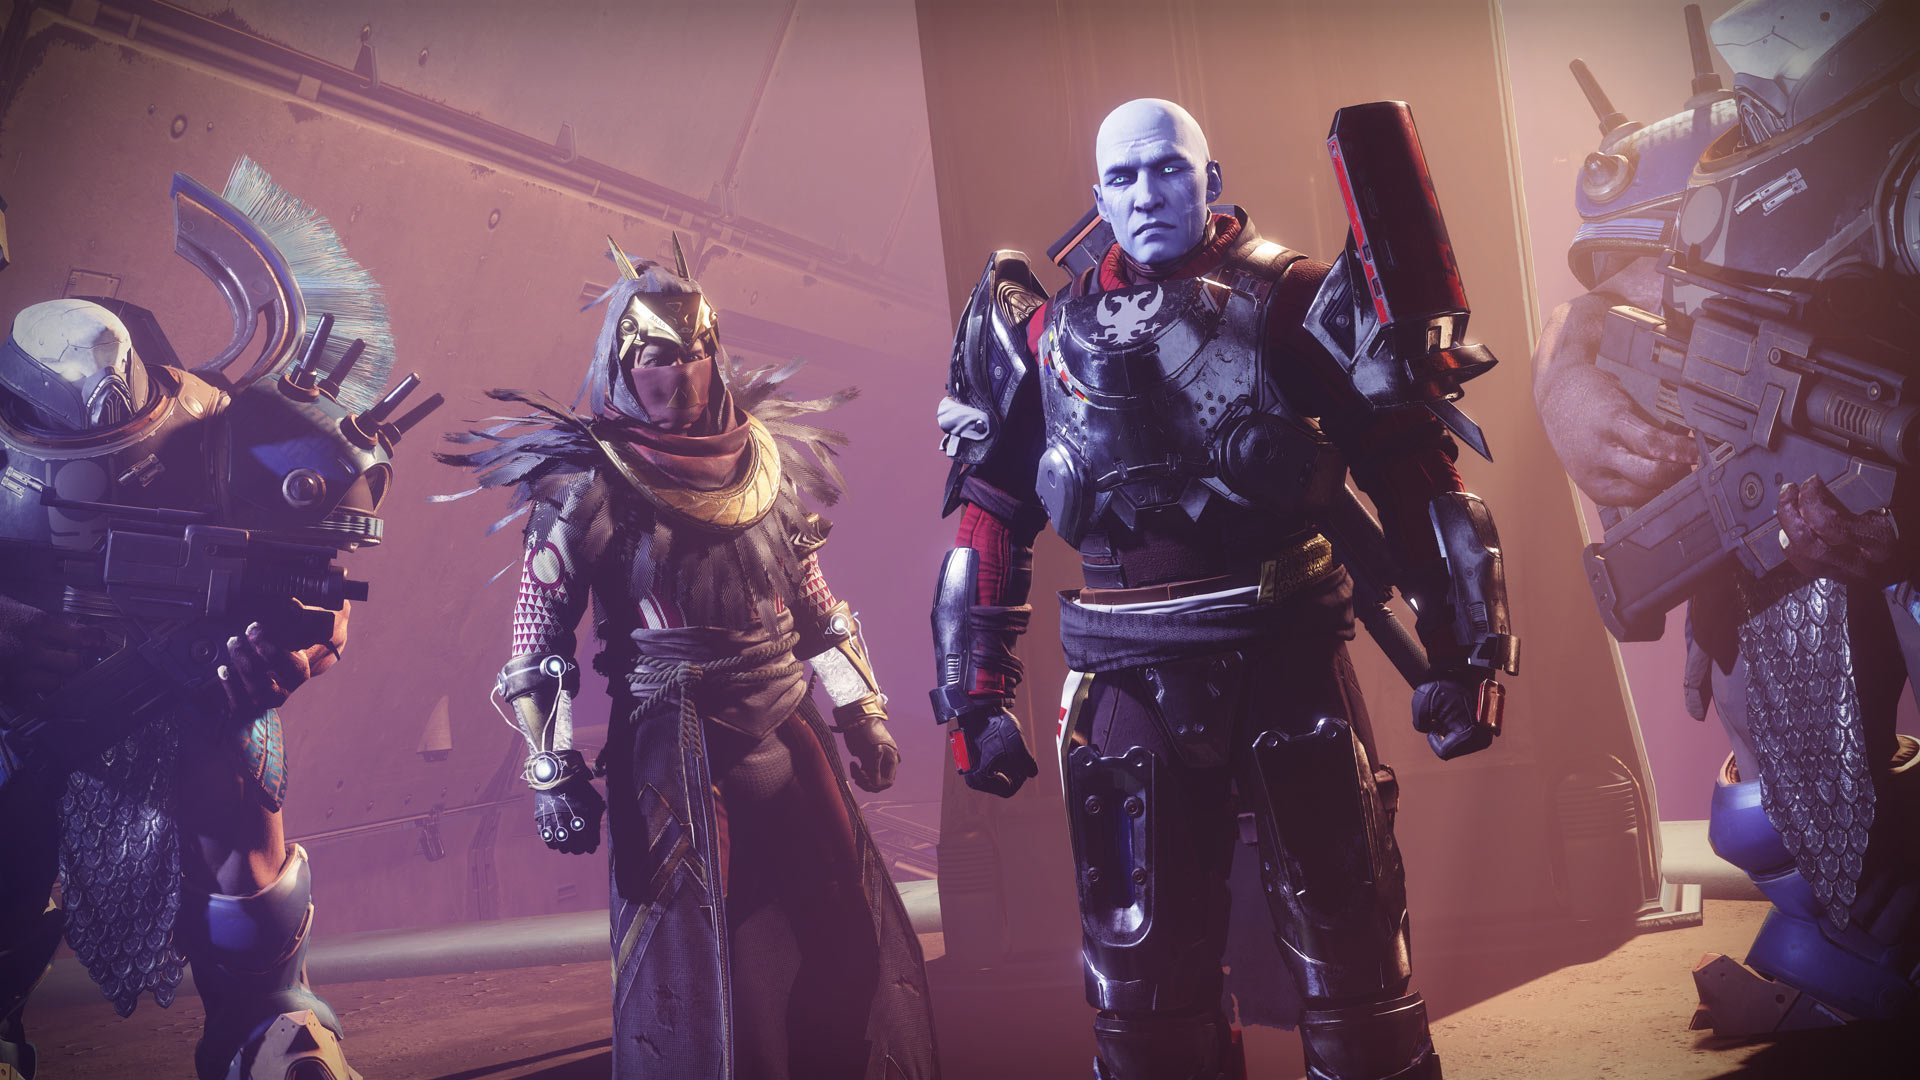 Bungie wants to expand Destiny 2 into 'additional media'